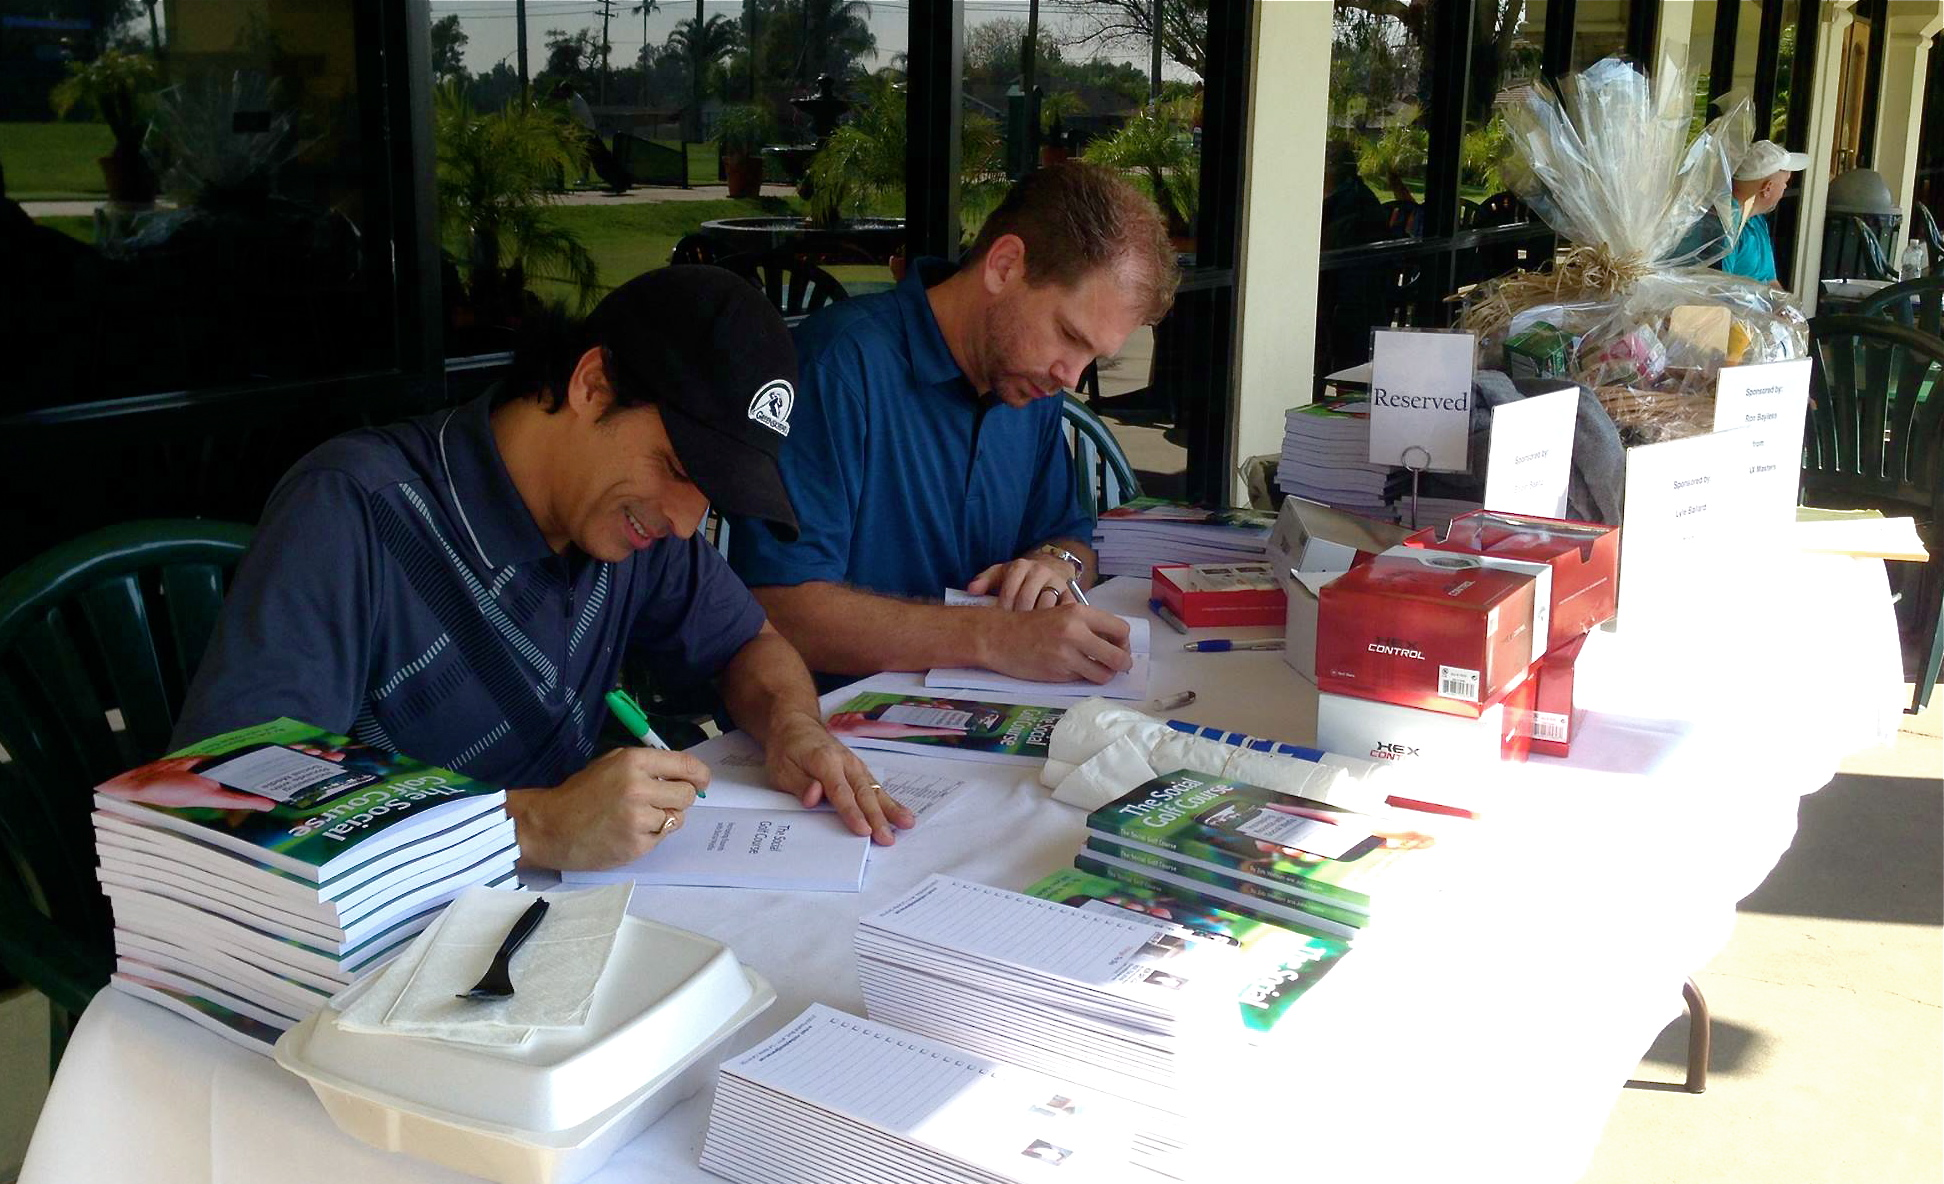 Zeb and John sign The Social Golf Course book